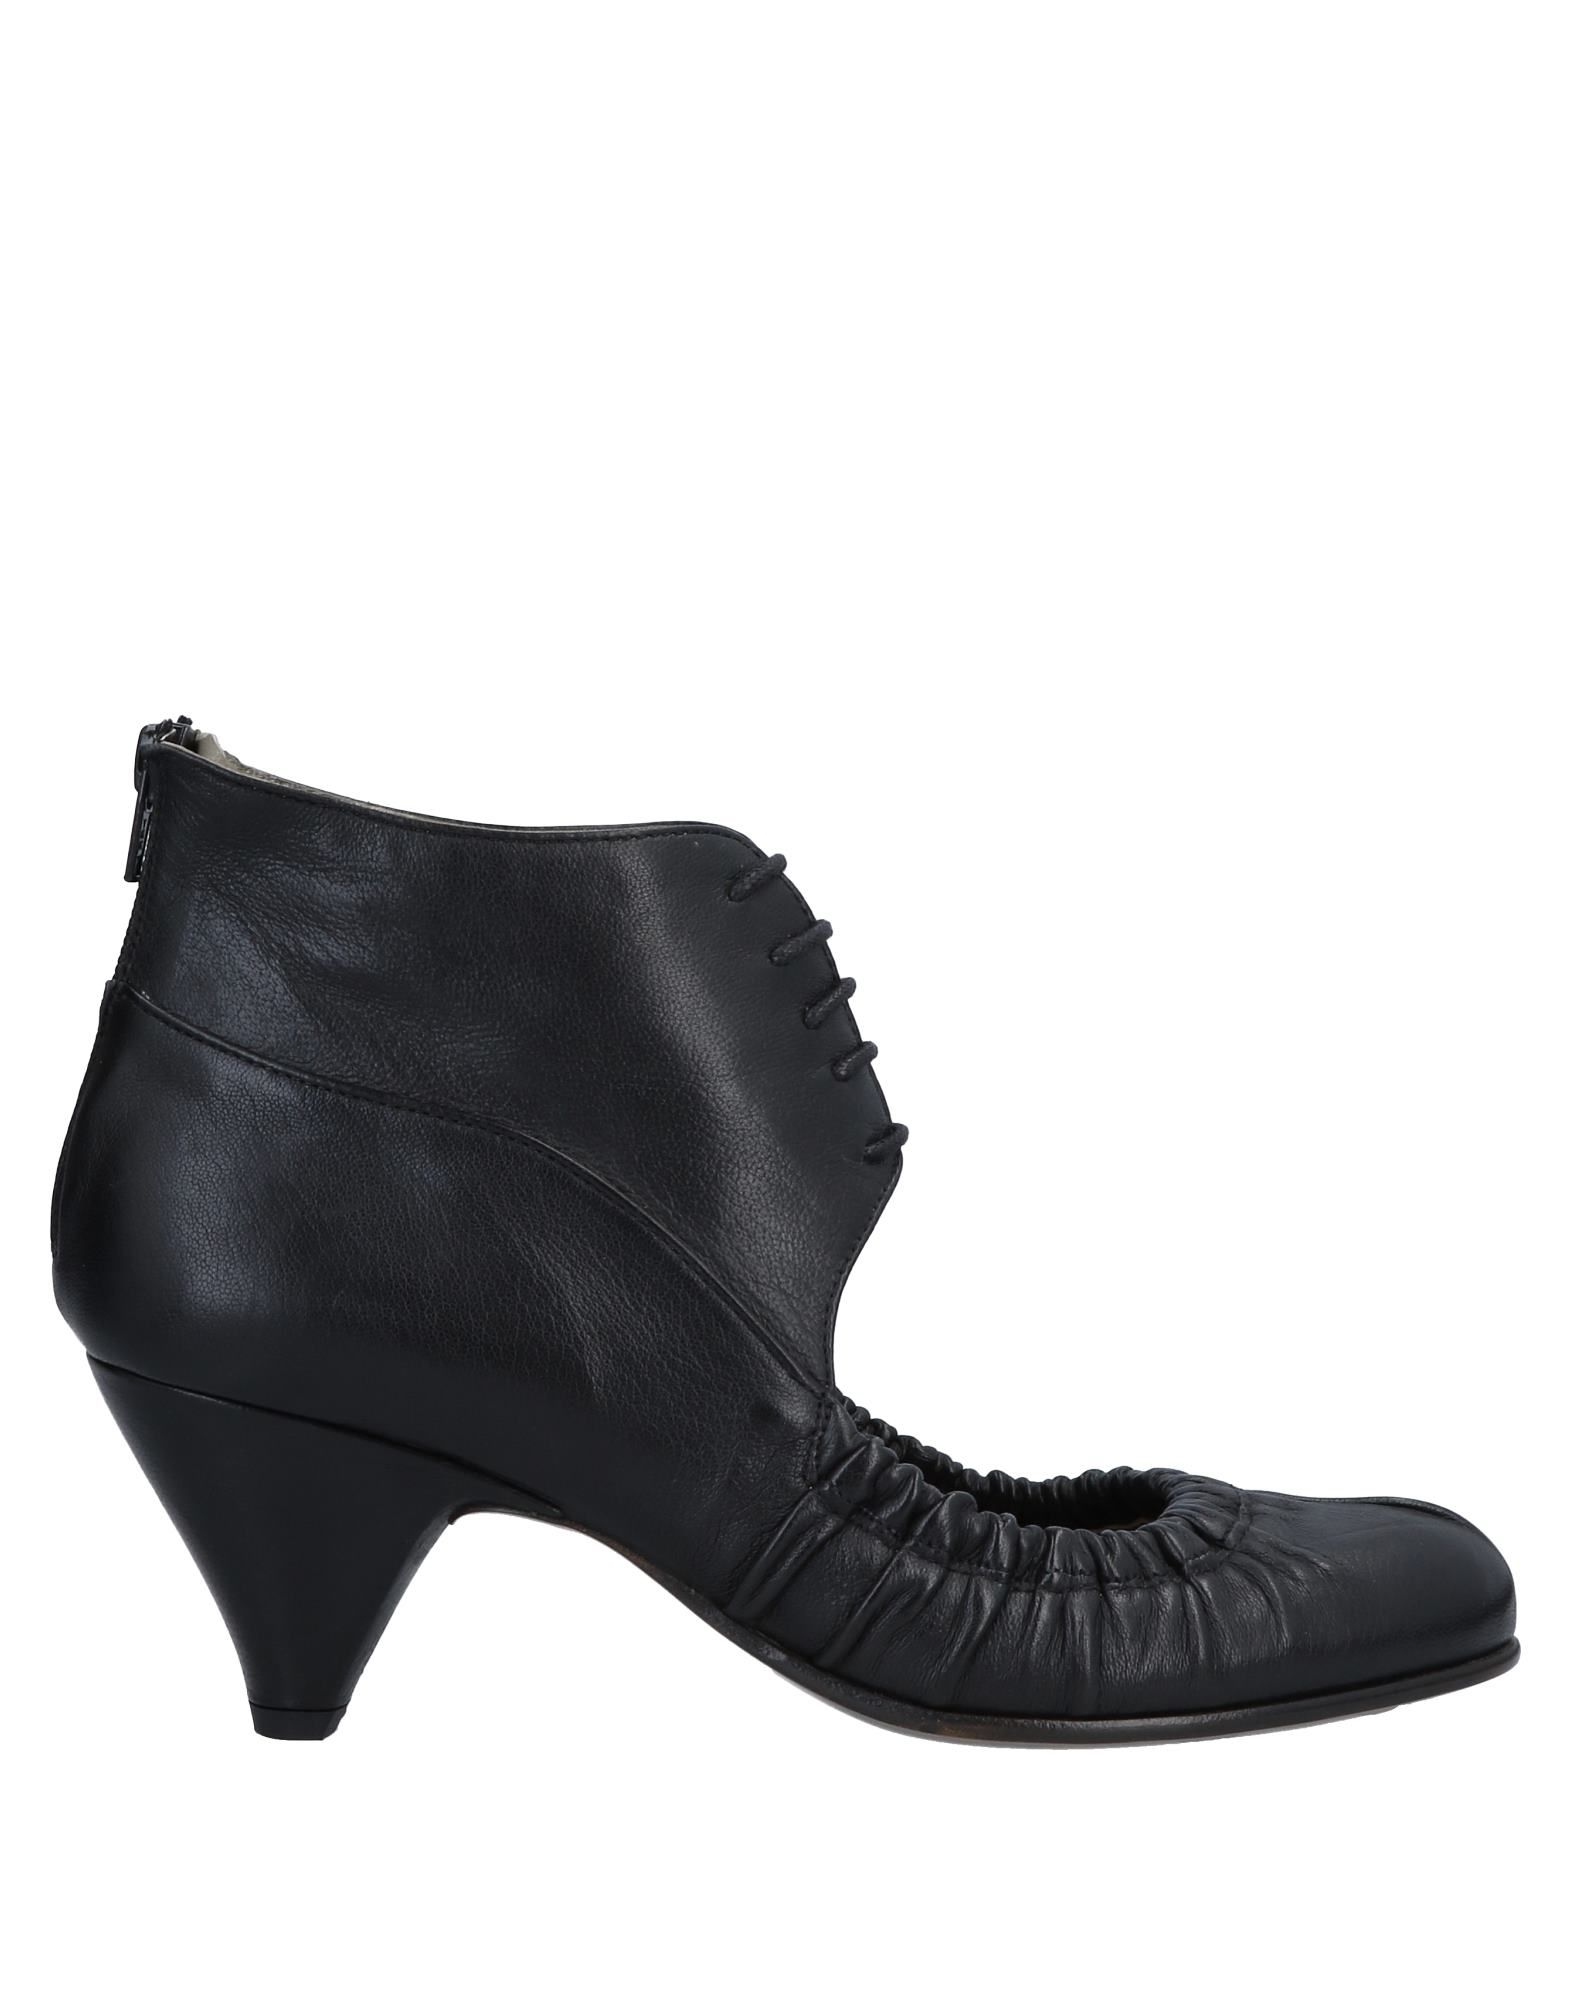 Ixos Ankle Boot - Women Ixos Ankle Boots online on 11561982DS  United Kingdom - 11561982DS on 2736a1